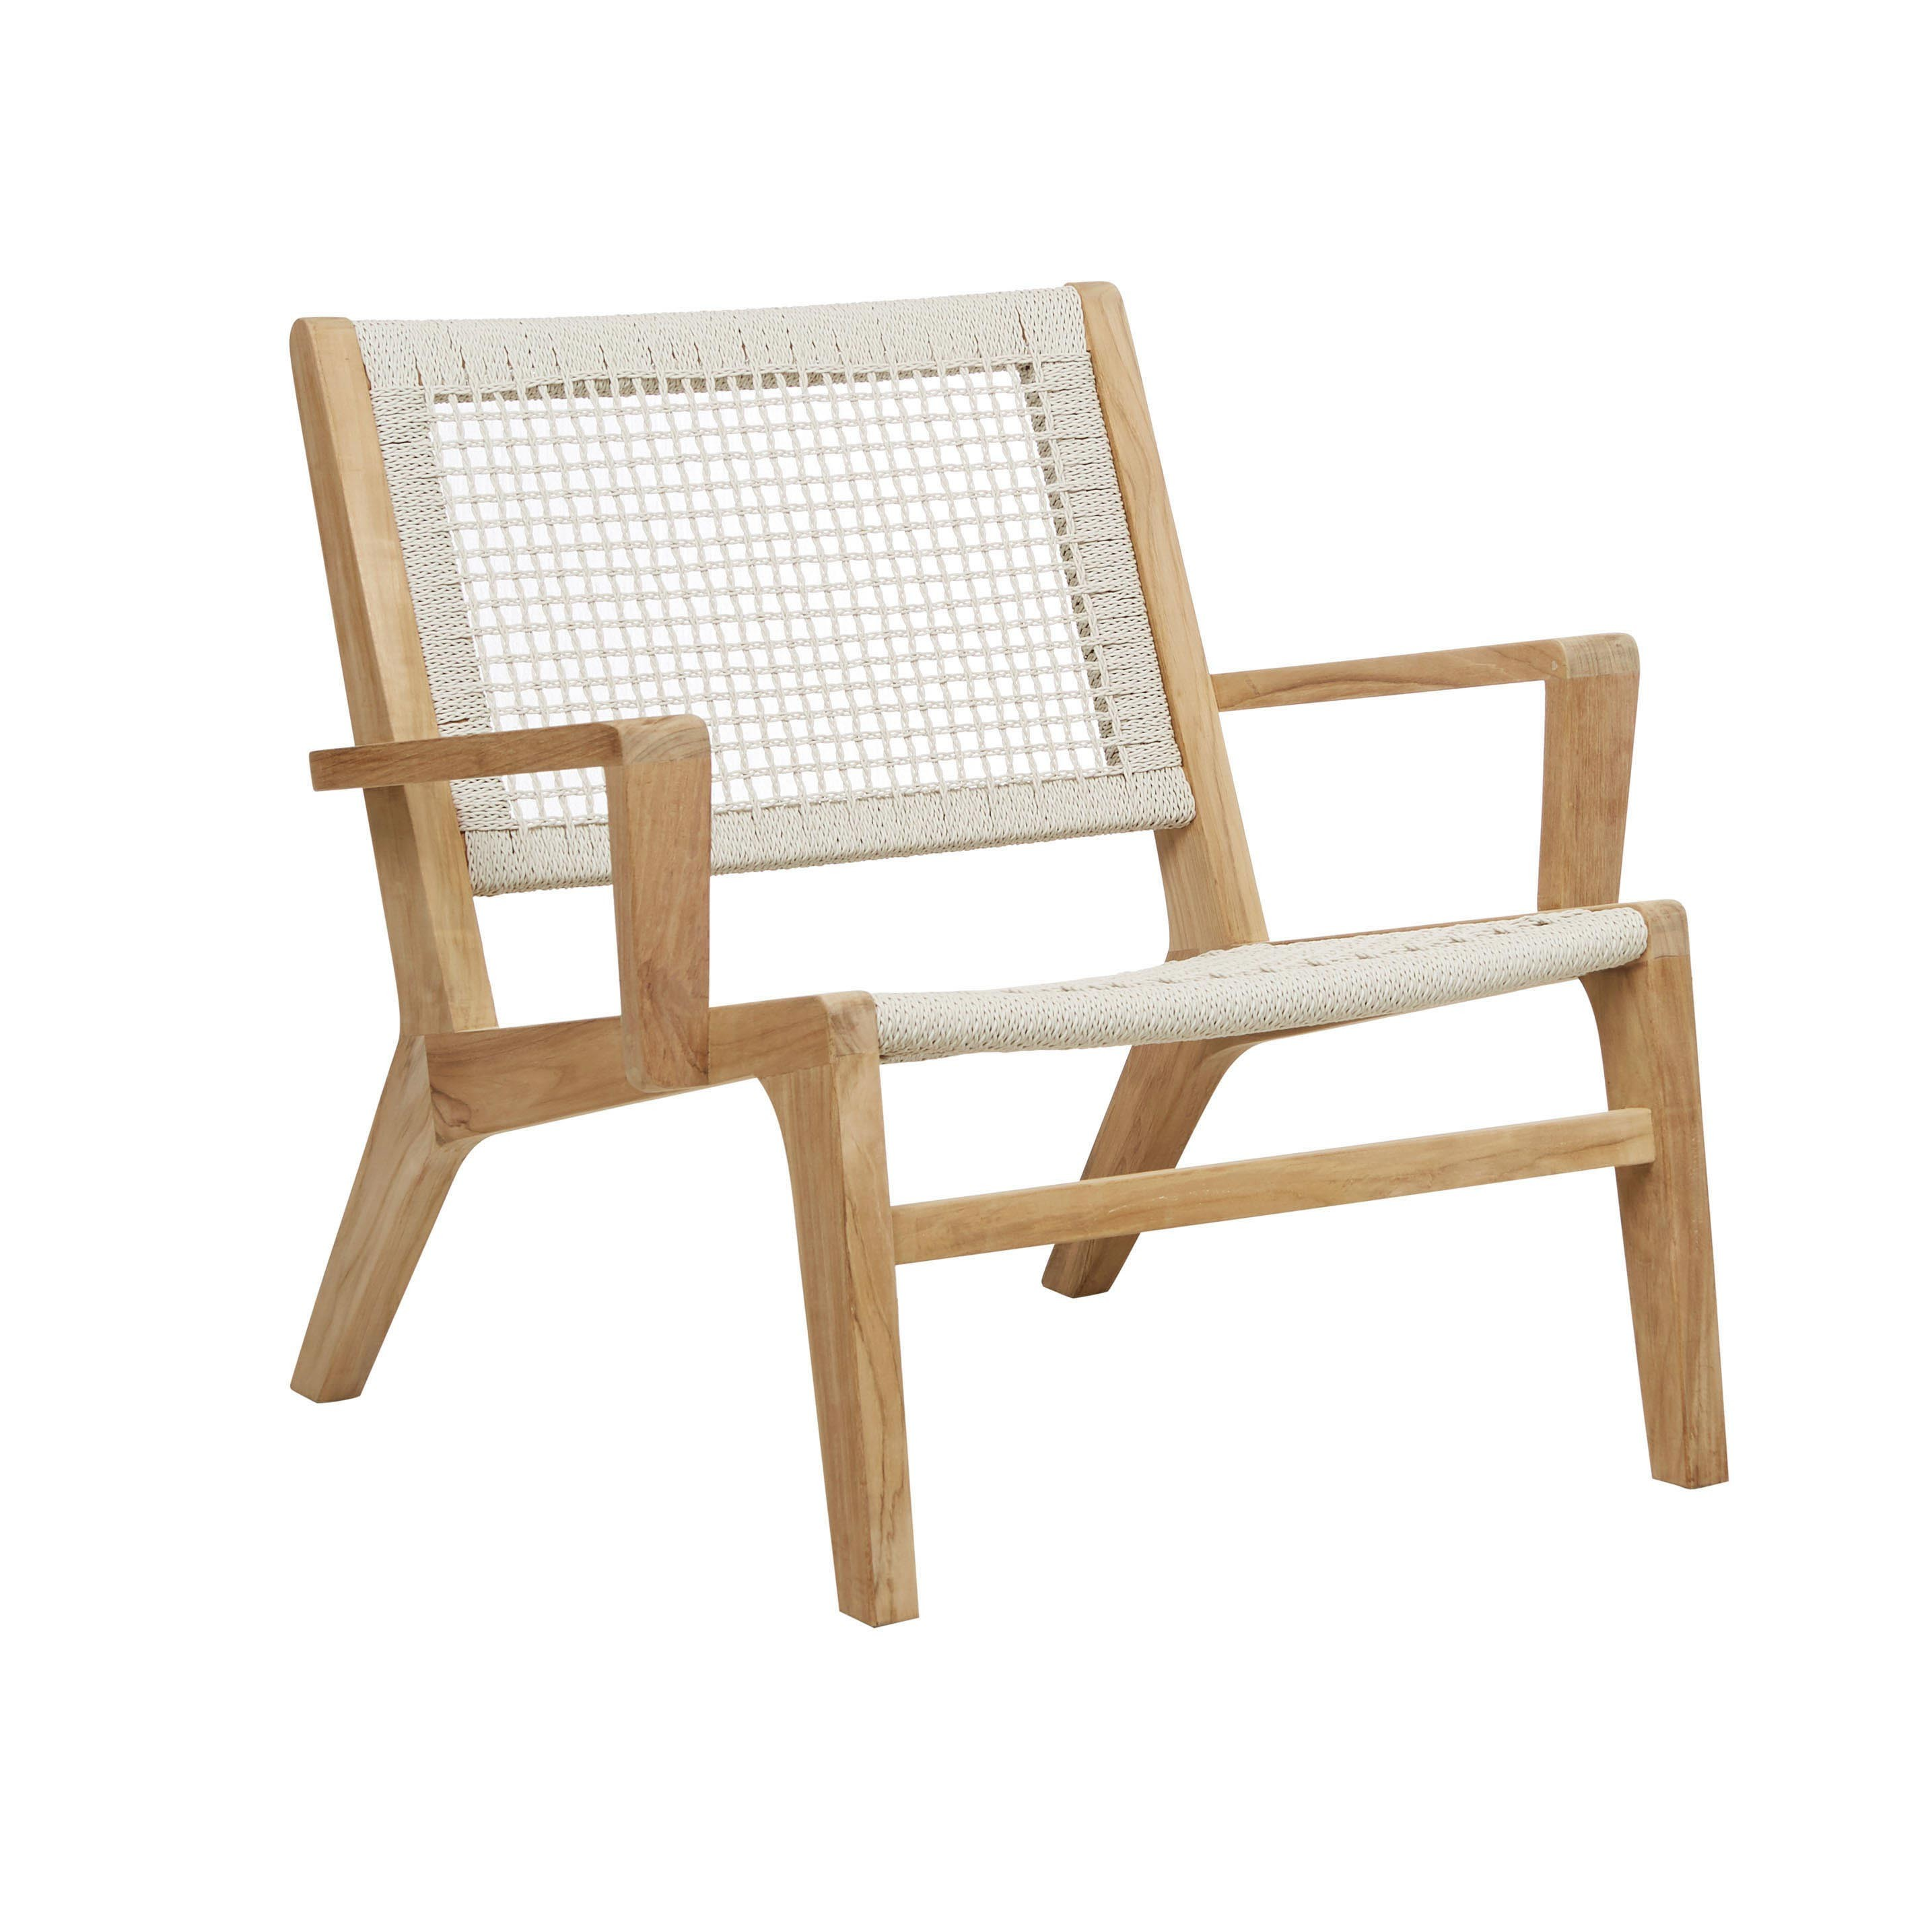 Furniture Hero-Images Occasional-Chairs haven-rope-01